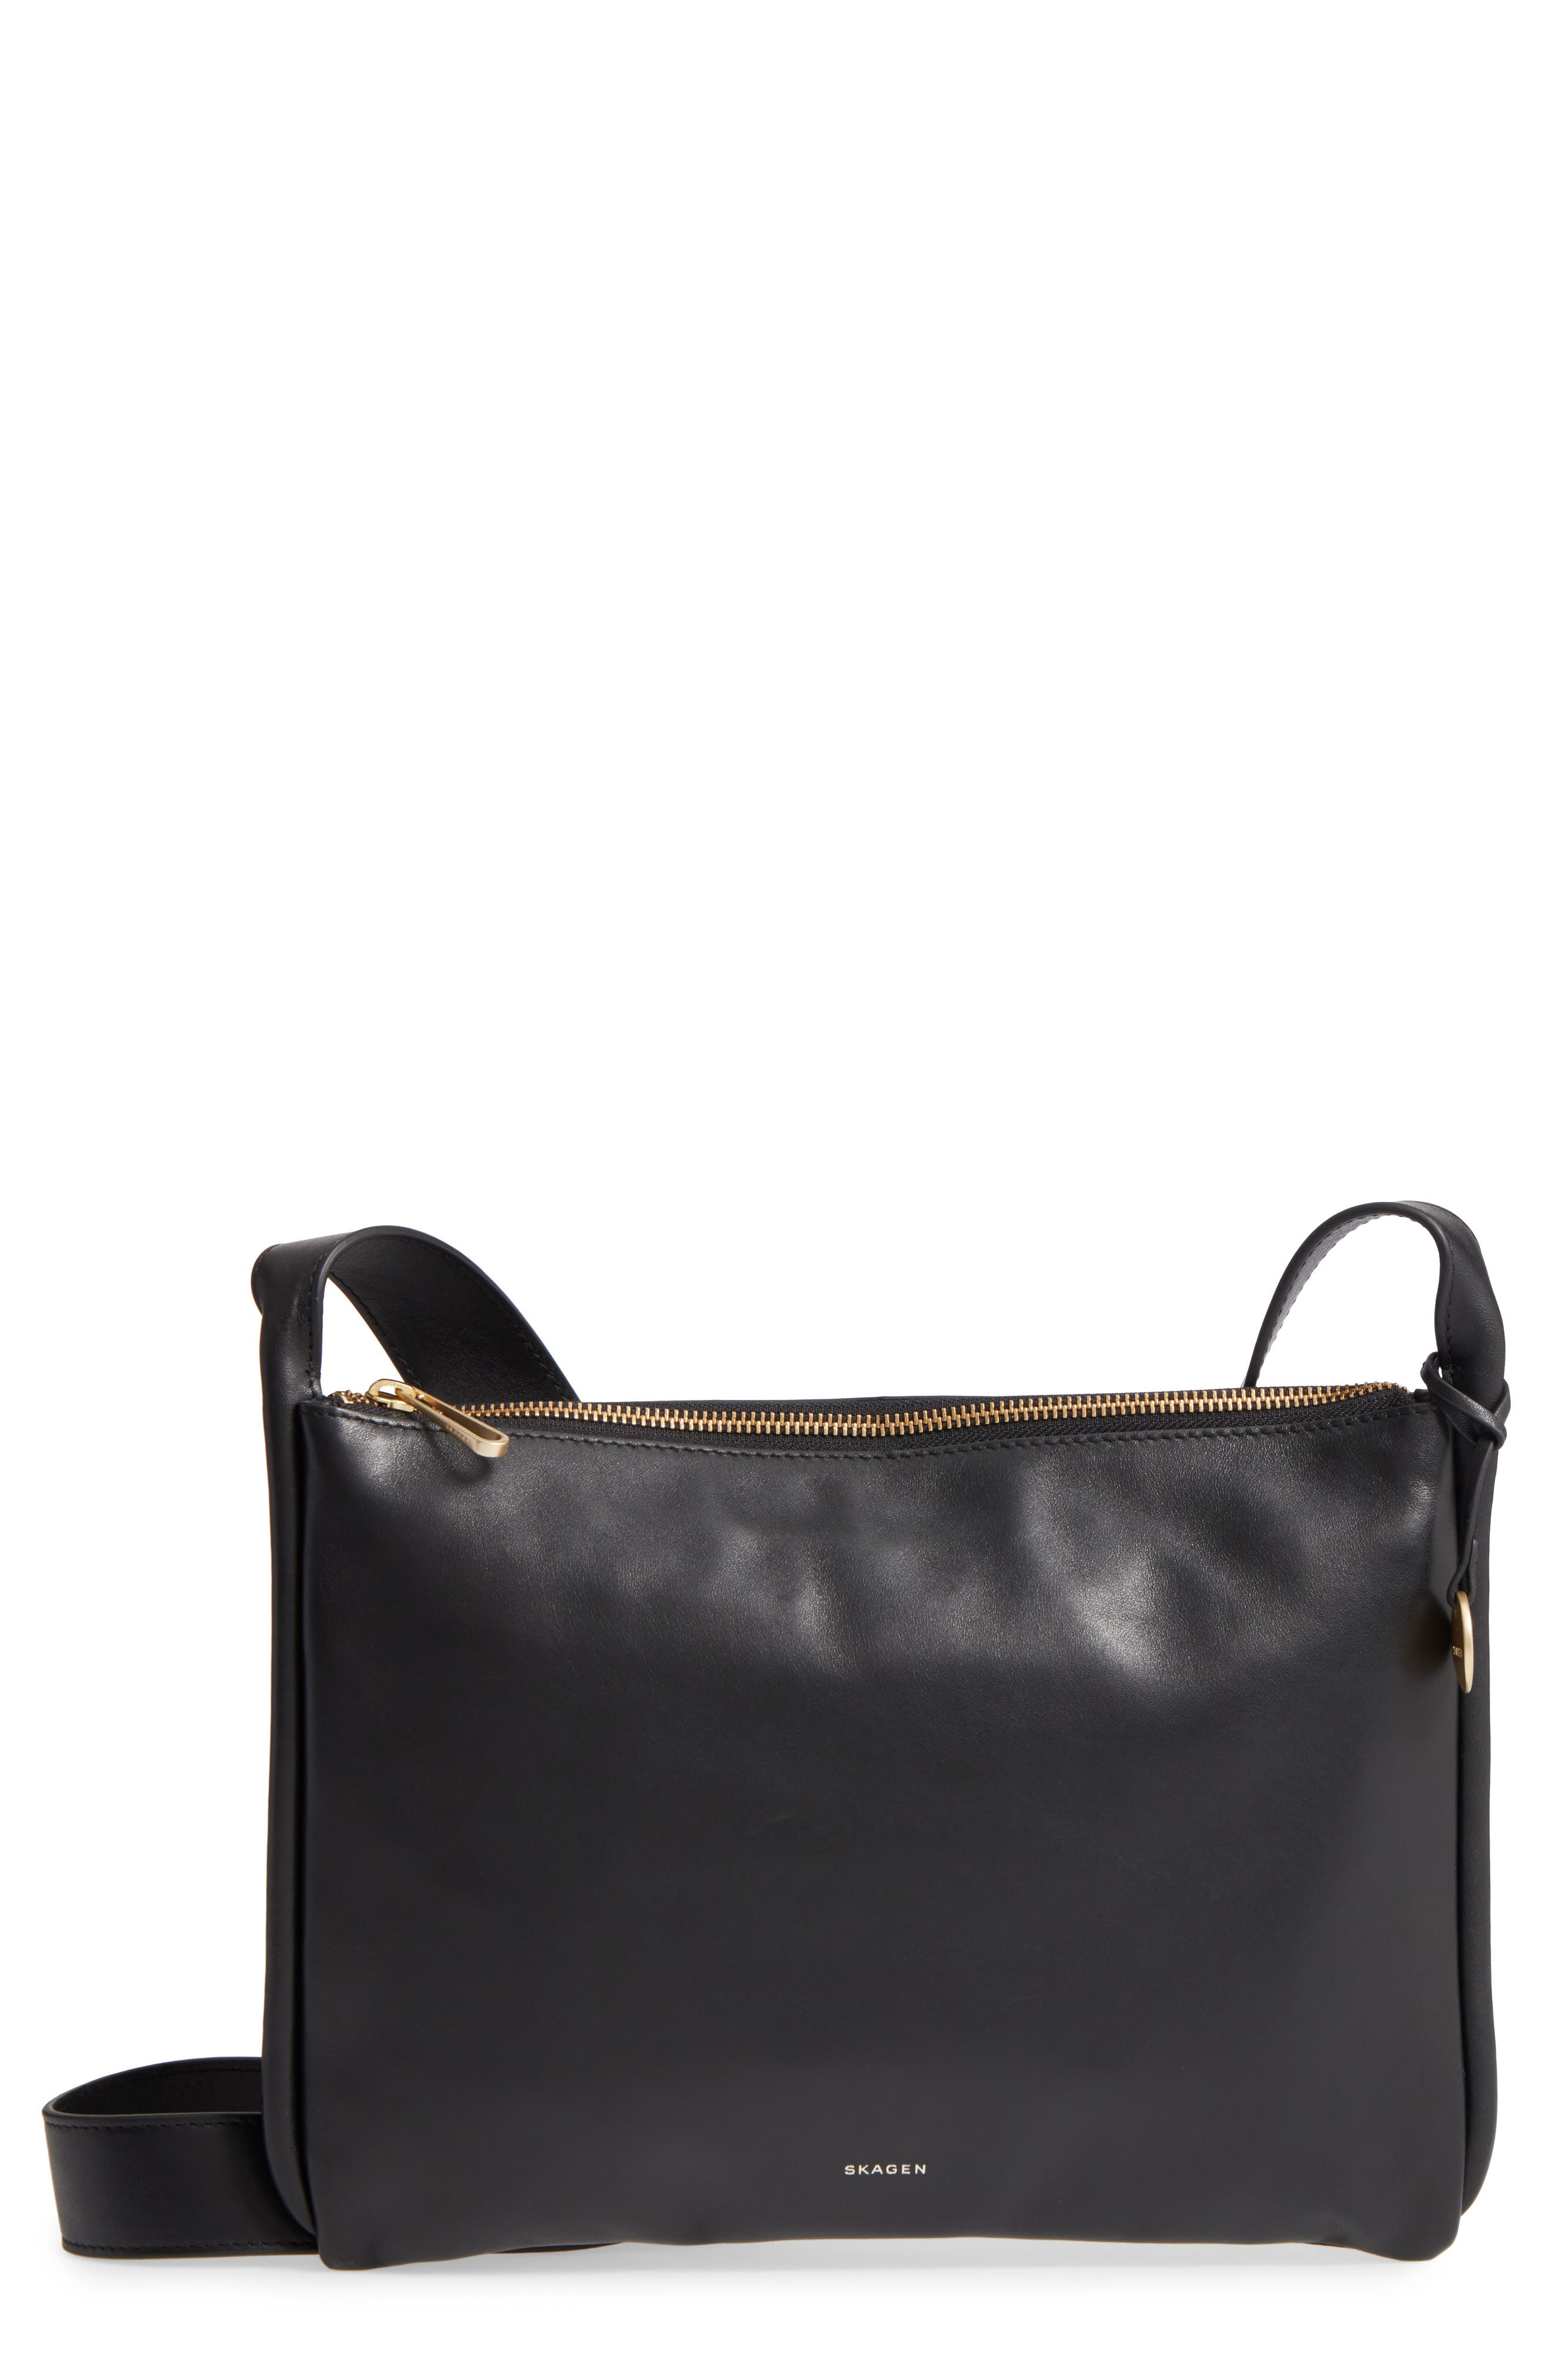 Skagen Slim Anesa Leather Crossbody Bag